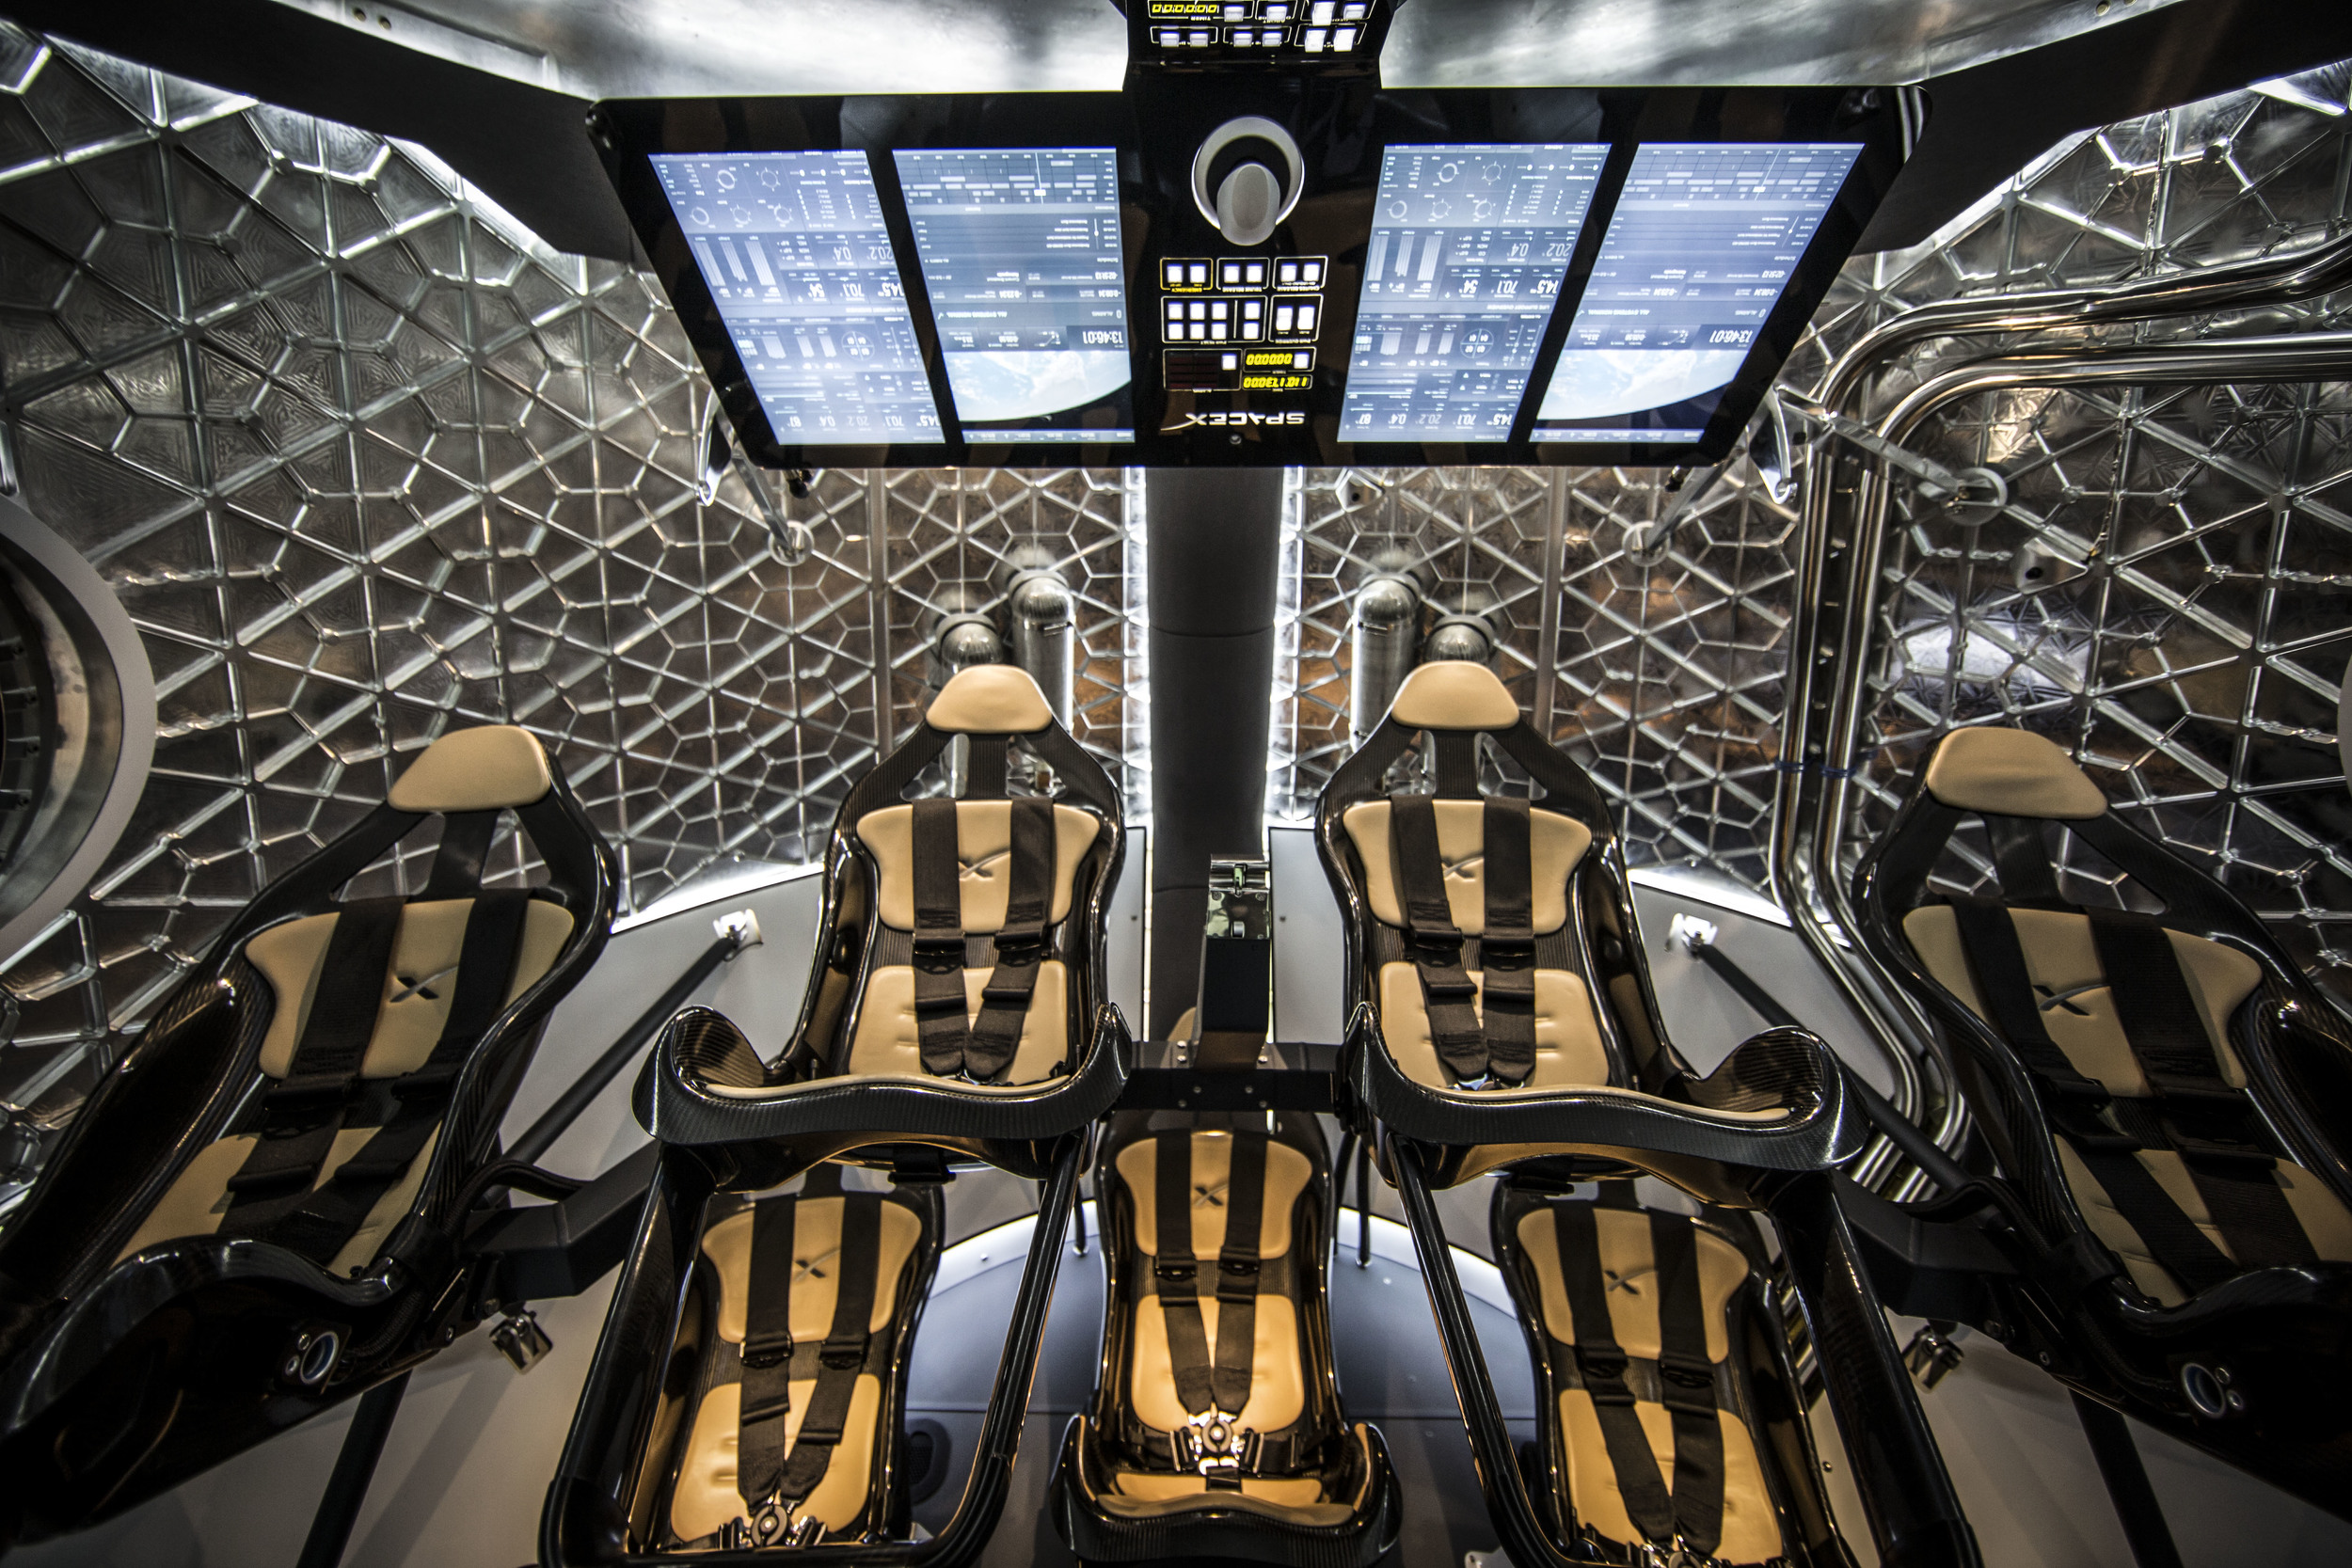 The SpaceX Dragon V2.  SpaceX was awarded a $2.6 billion contract to develop the spacecraft to full human-rated capacity.  Image Credit: SpaceX